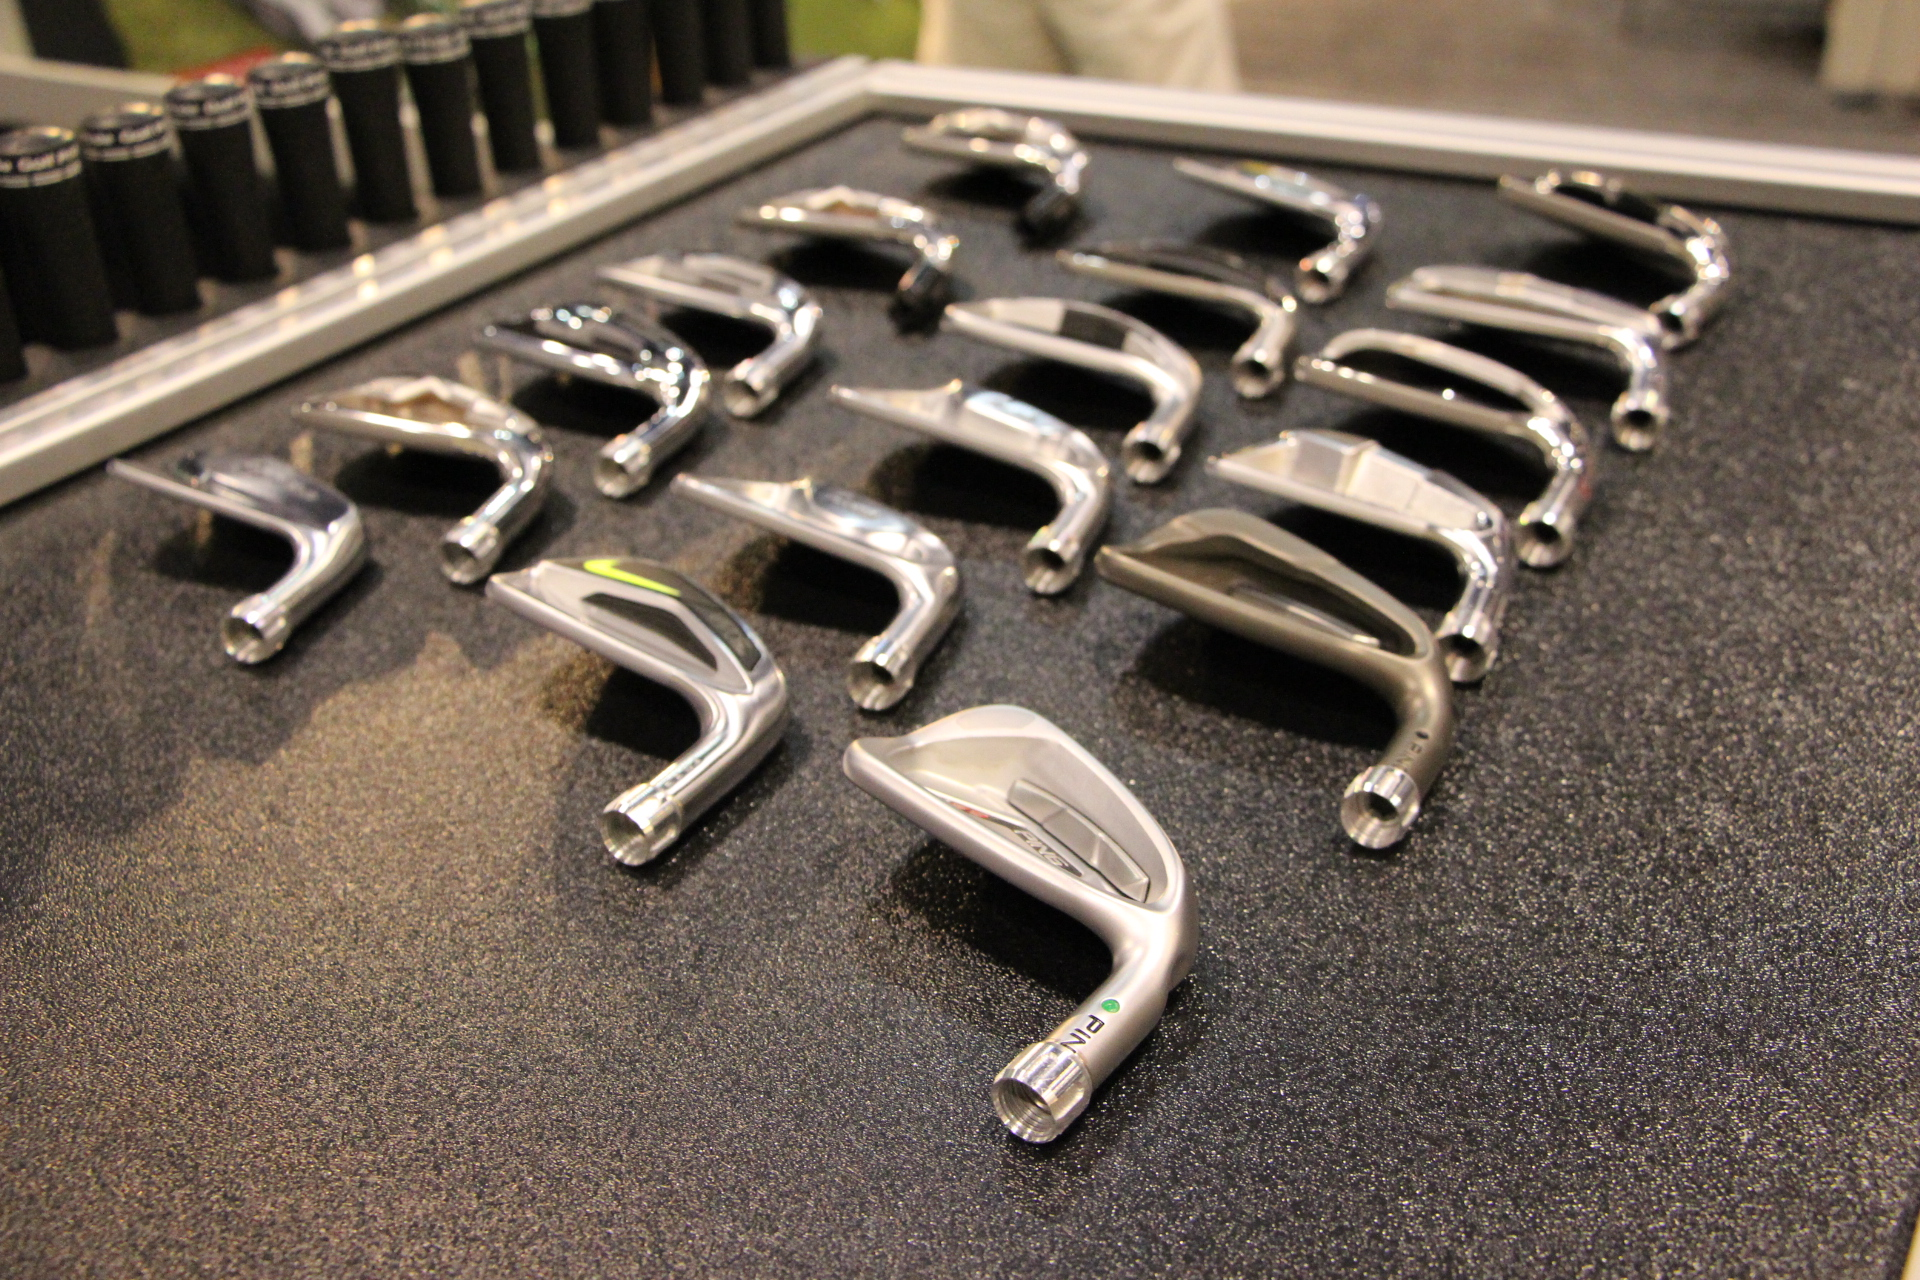 Club-Conex offers universal adpater systems for metal woods, as well as irons and wedges.